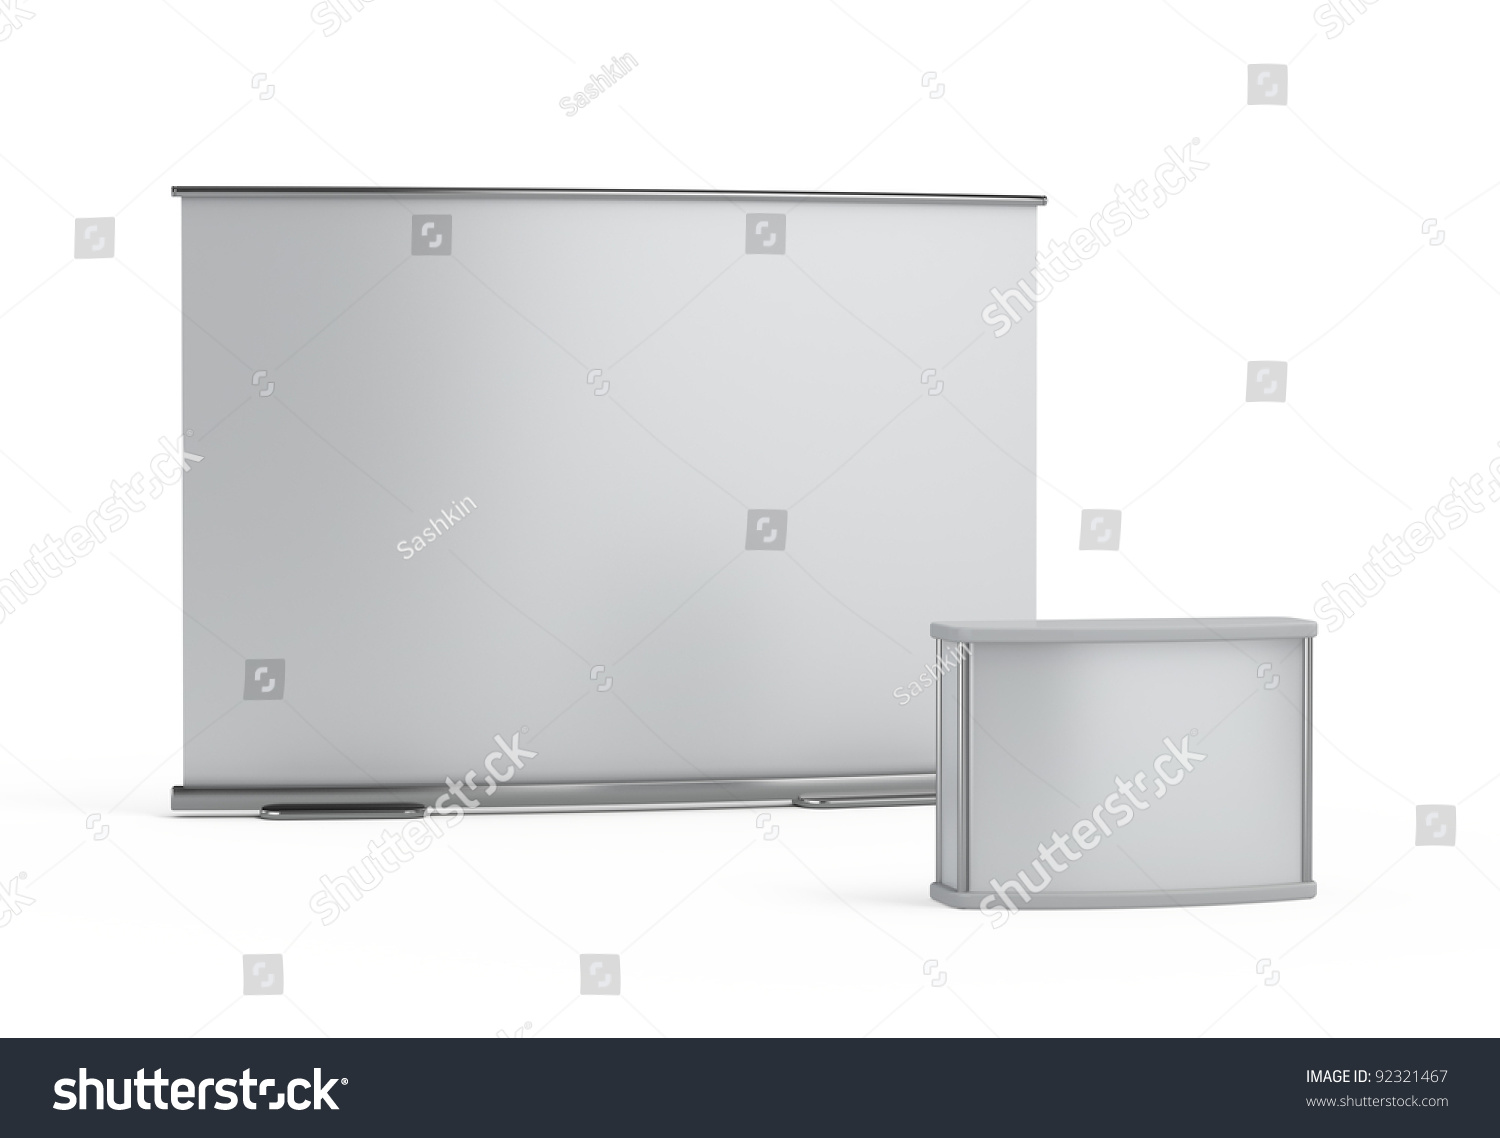 Exhibition Booth Blank : Blank trade show booth template stock illustration